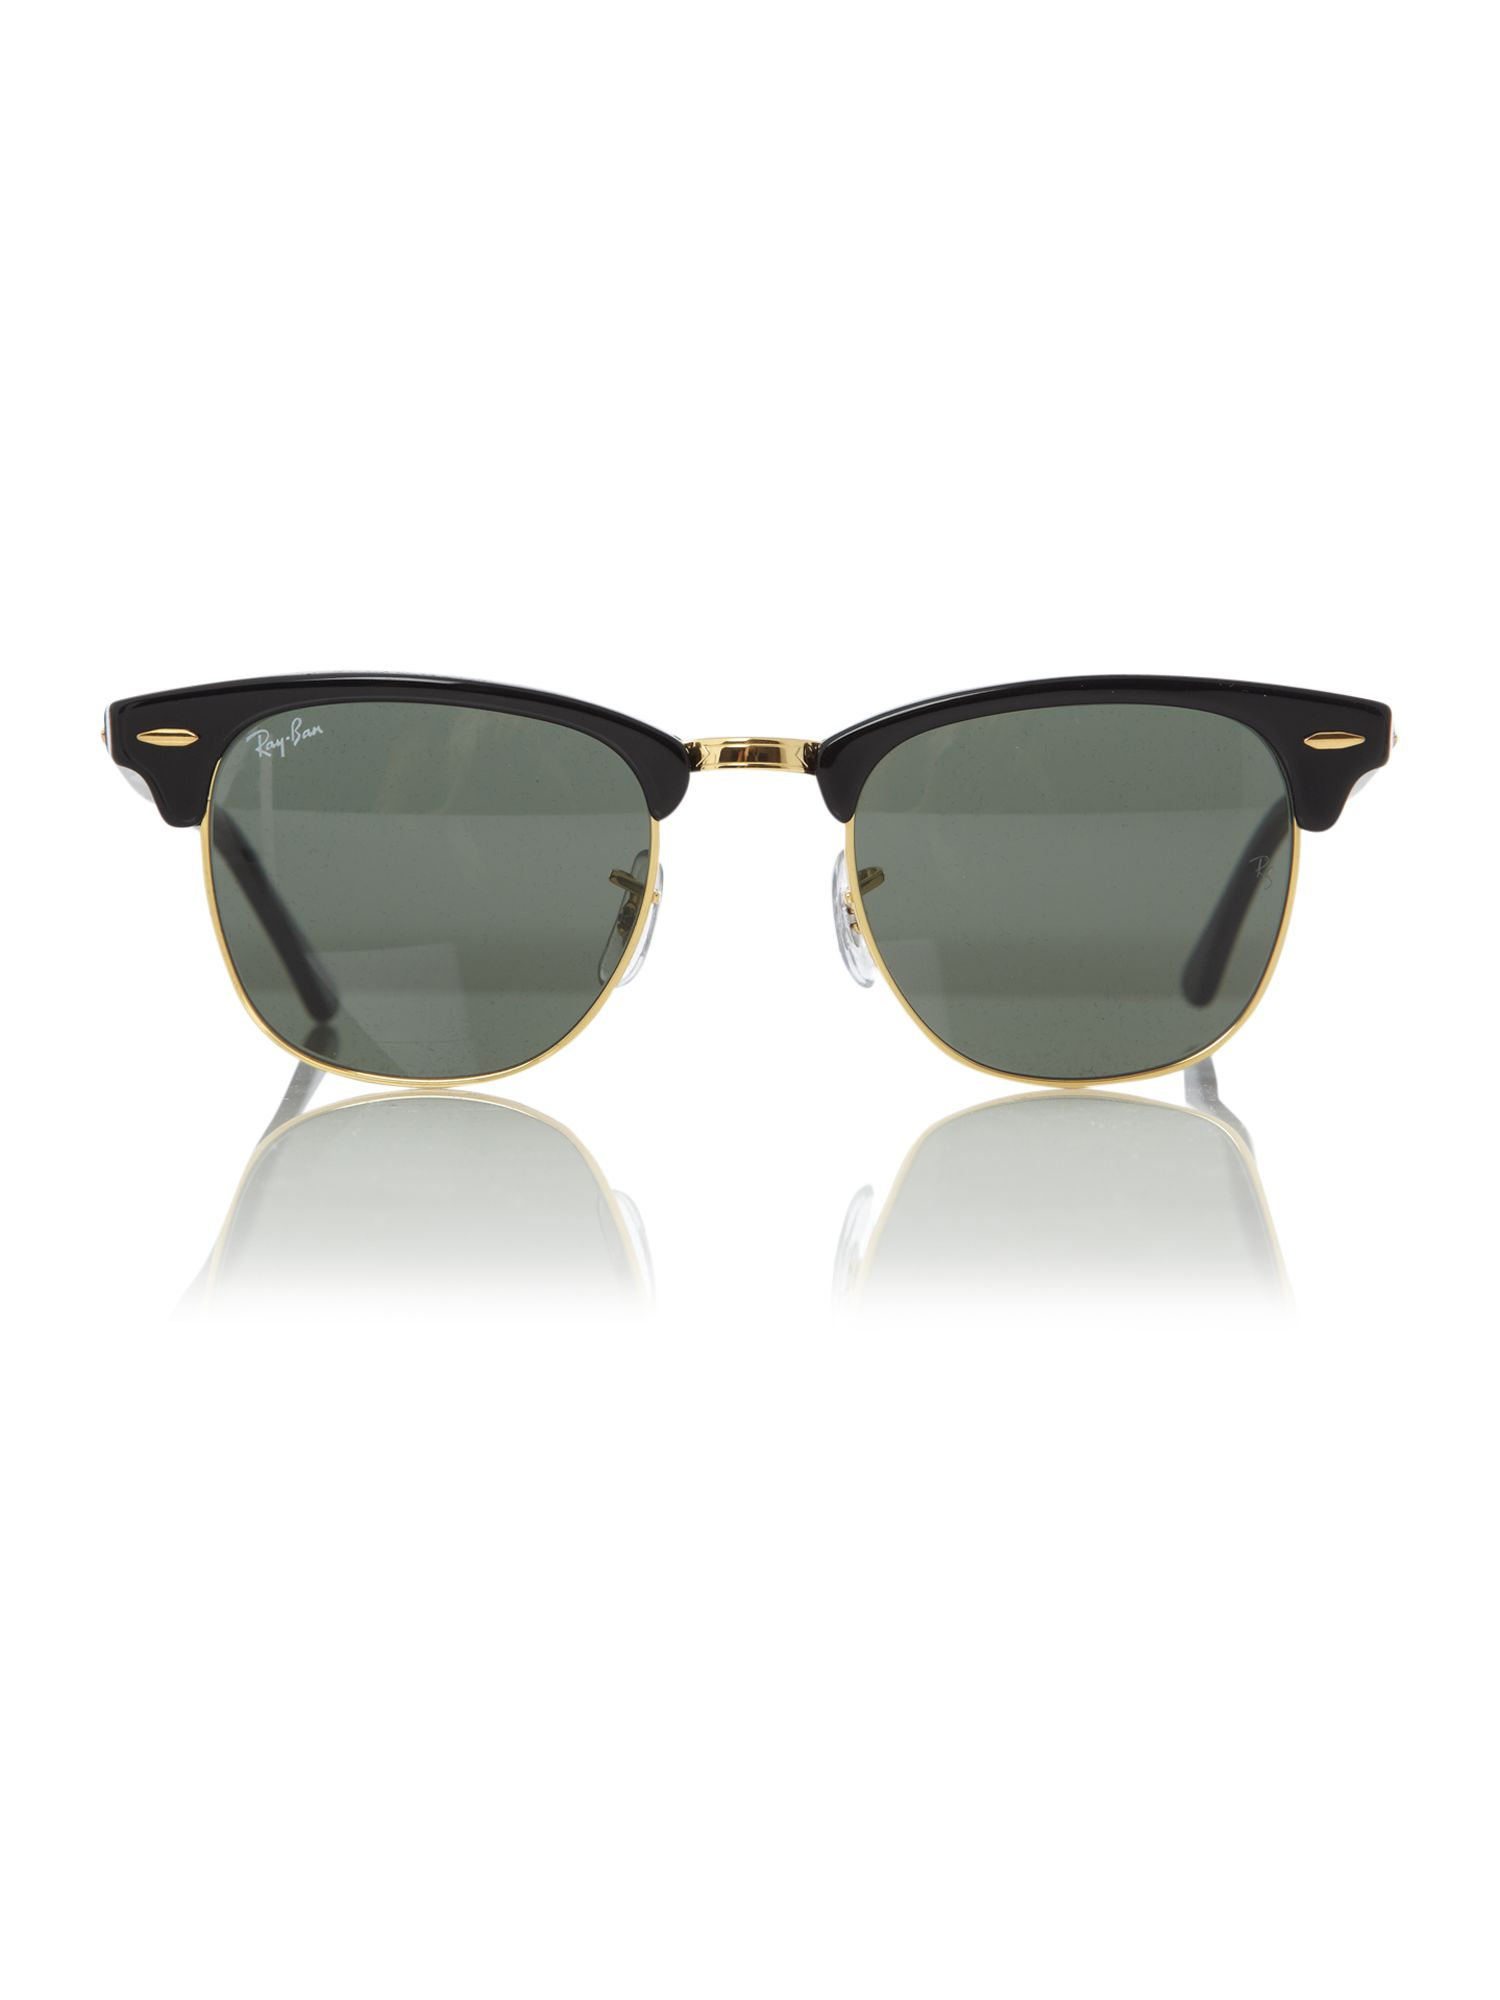 Unisex RB3016 Ebony/Arista Clubmaster Sunglasses